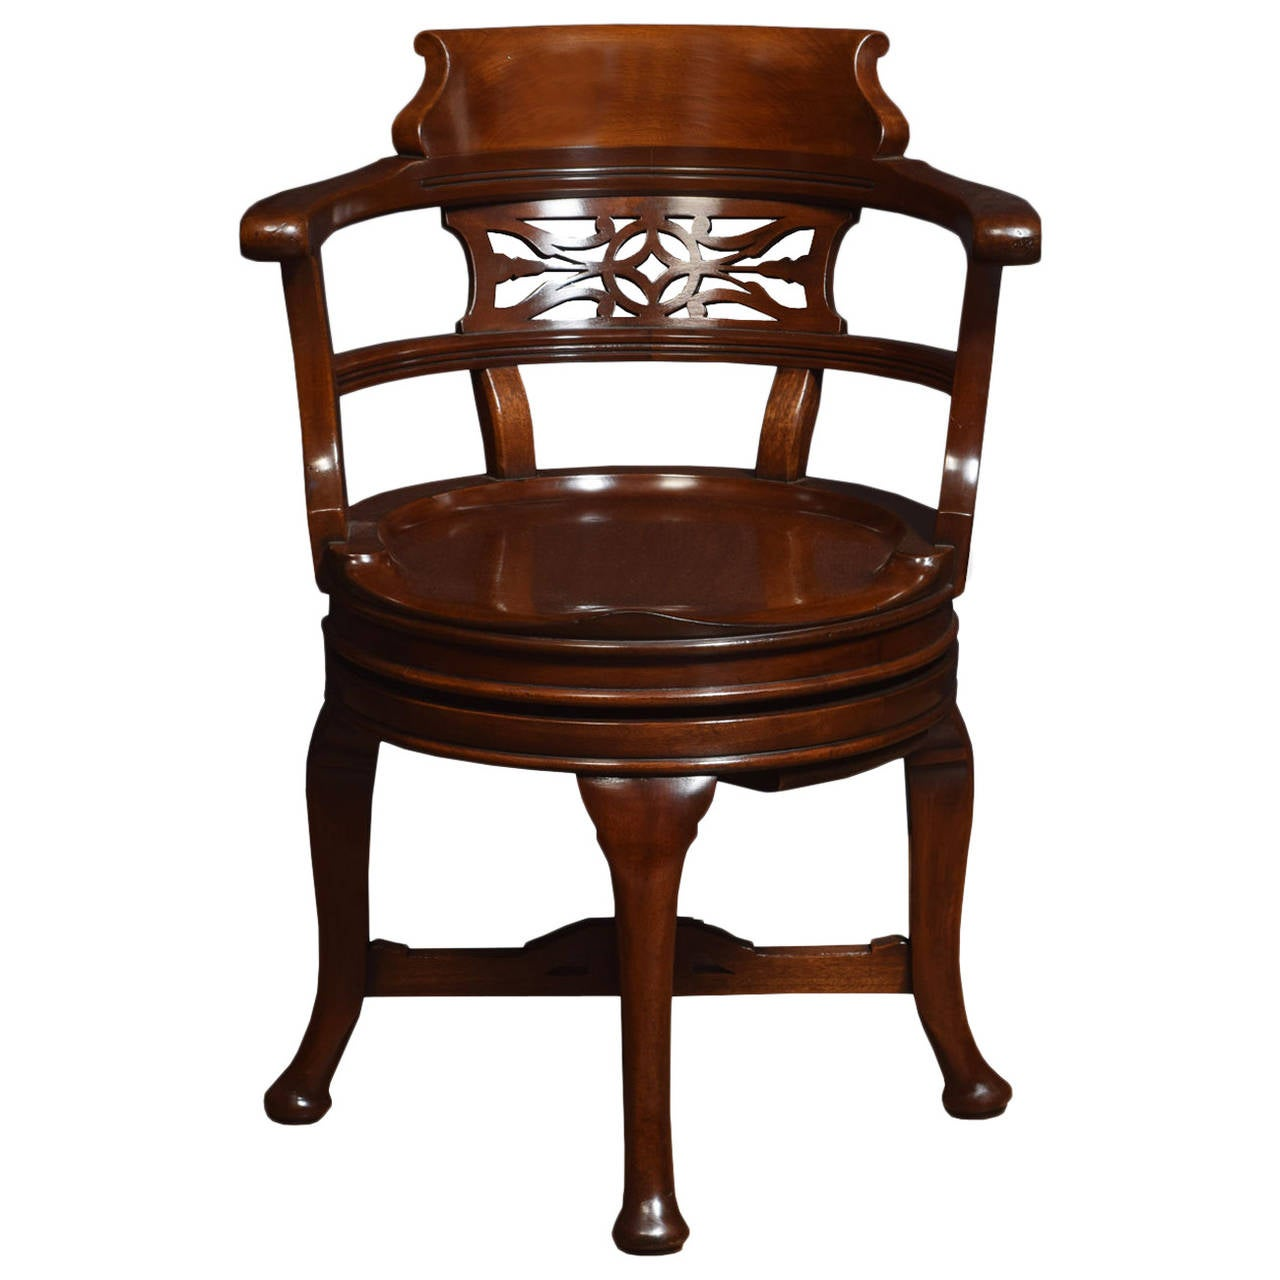 Mahogany swivel desk chair at 1stdibs for Chair with swivel desk